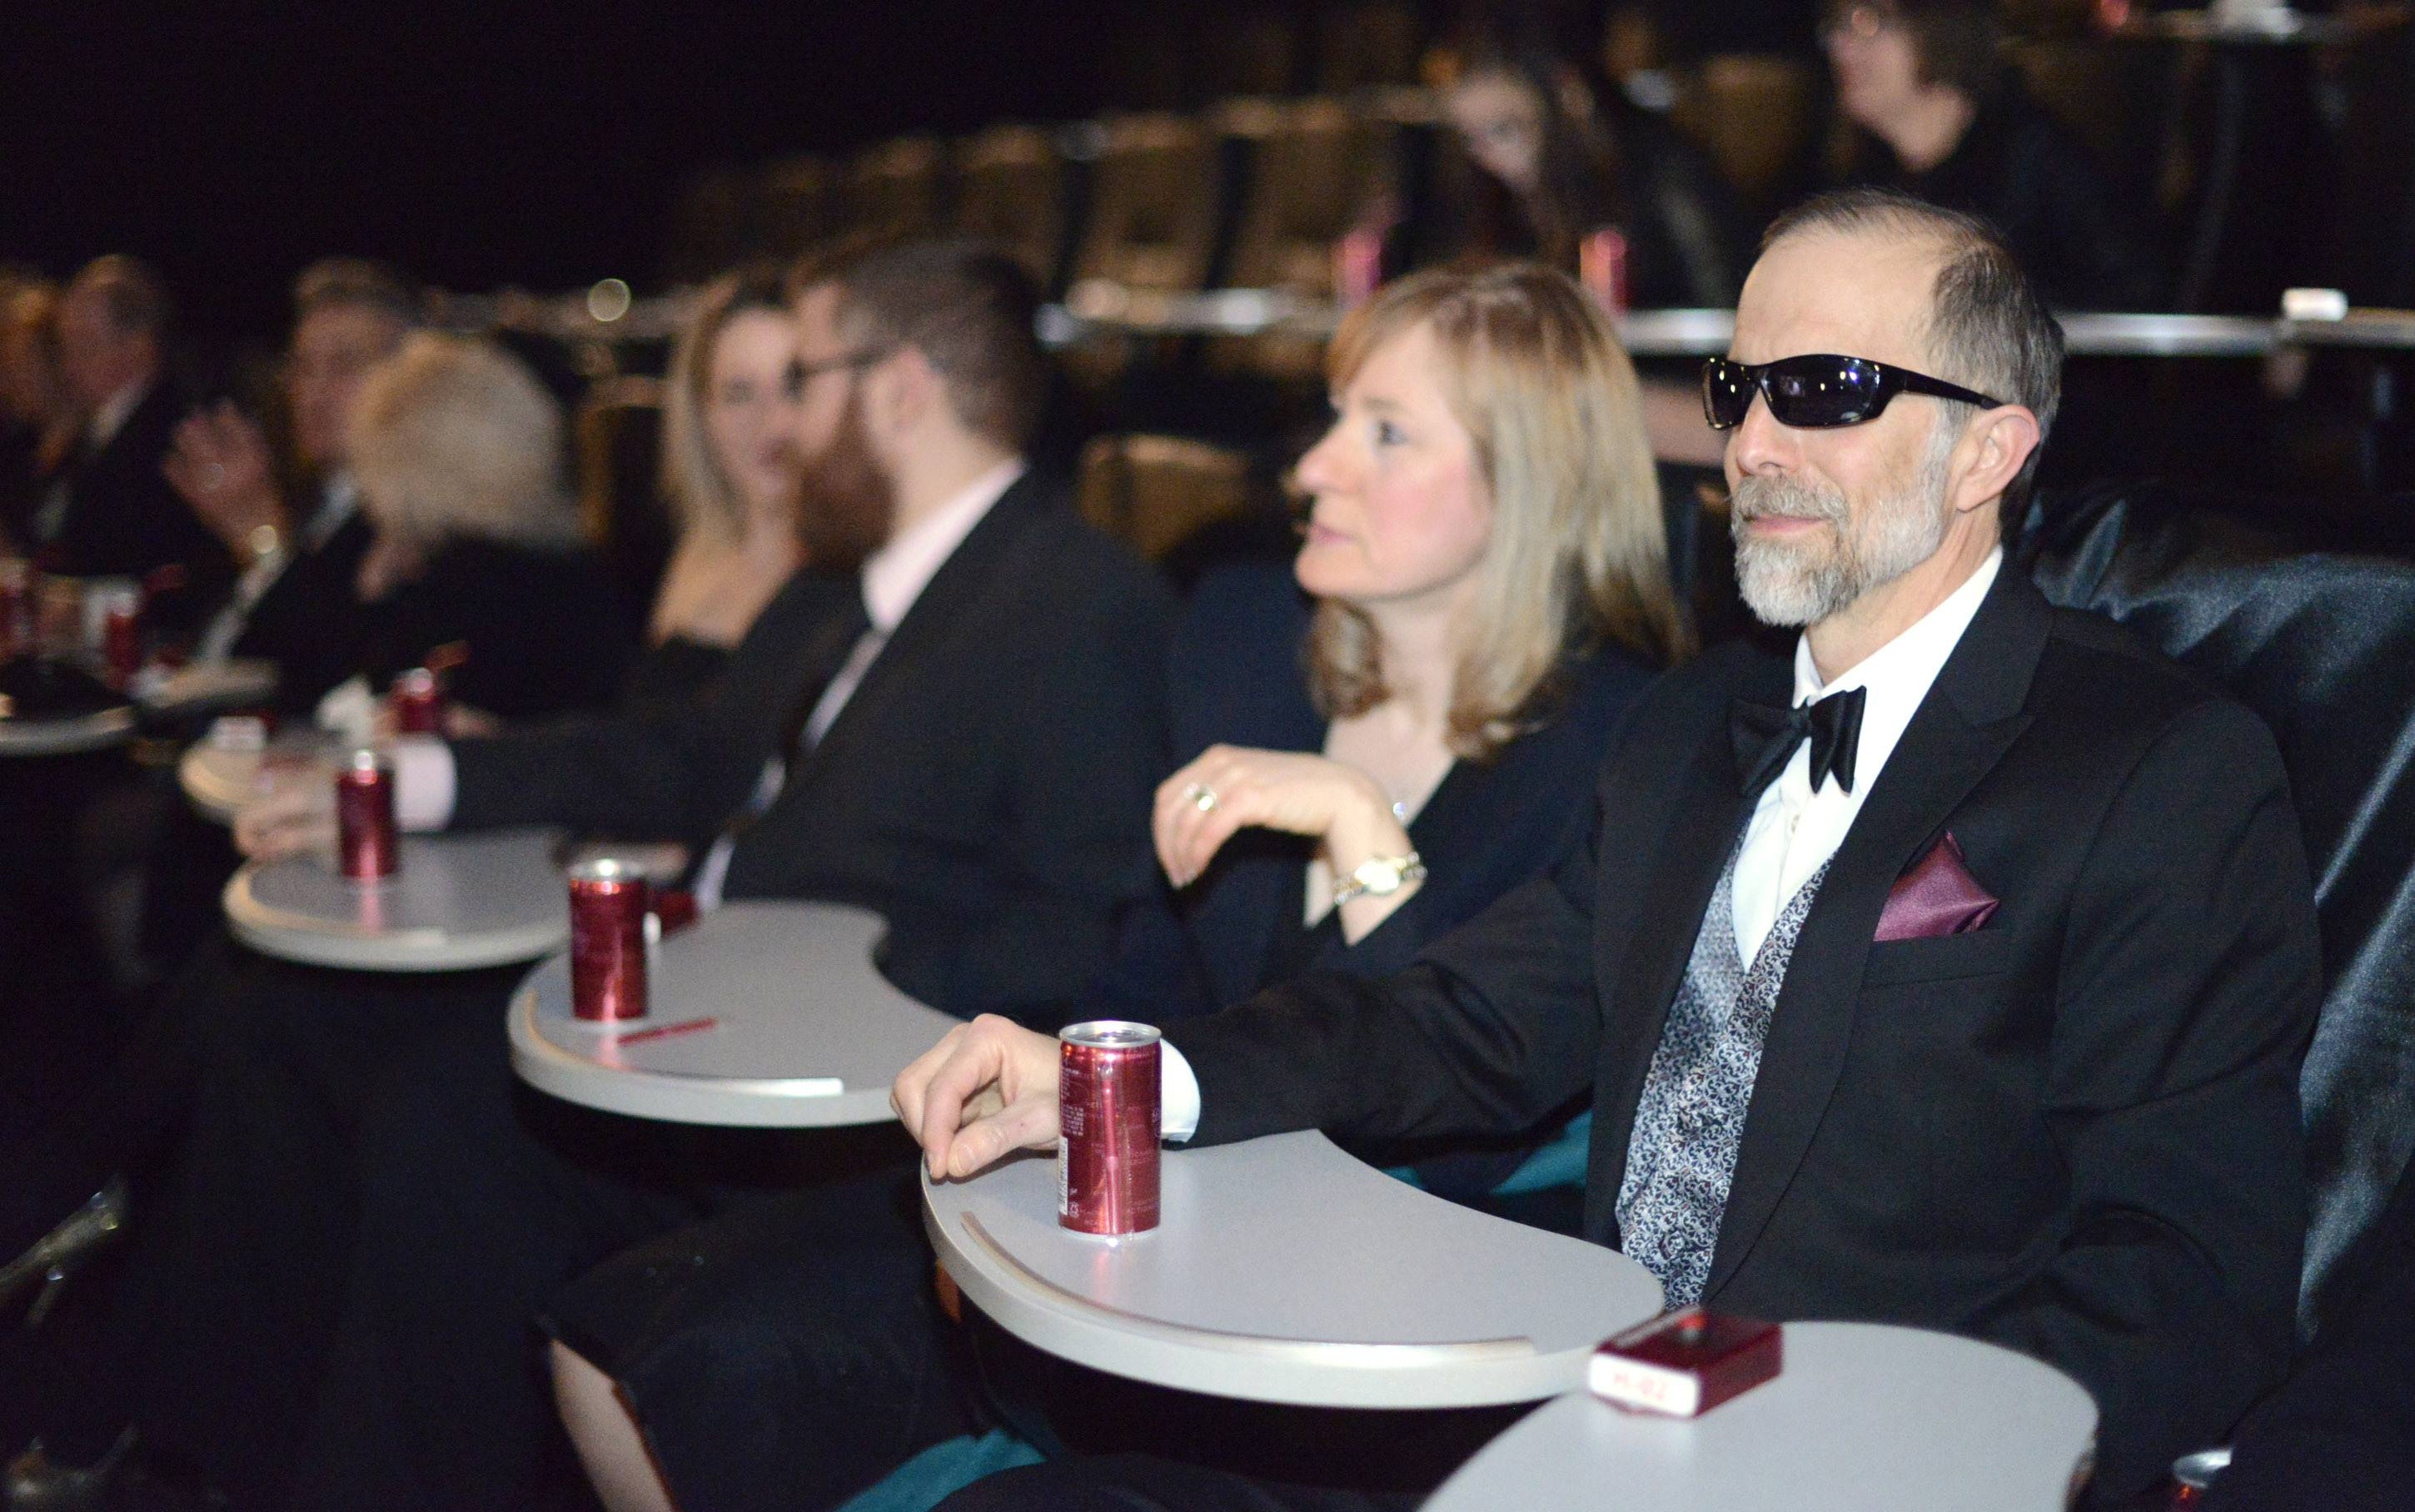 Tom Spadafora of Aurora wore movie star sunglasses to compliment his tux for the Daily Herald subscribers event of the 86th Academy Awards party hosted by Dann Gire at Studio Movie Grill in Wheaton on Sunday, March 2. He and wife, Debbie, left, have attended a previous Daily Herald event hosted by Gire.